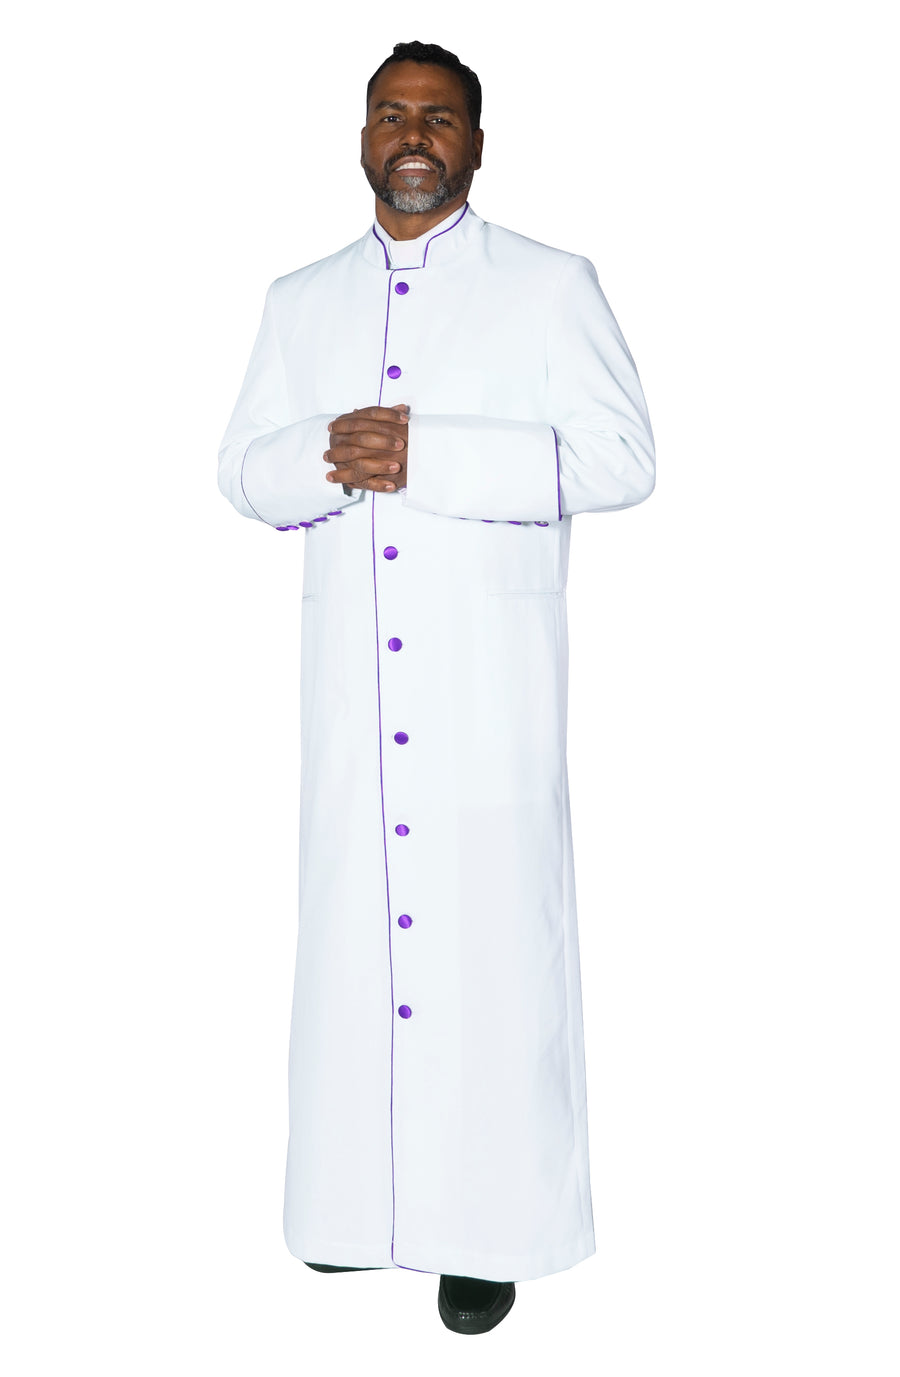 MENZ Clergy Robe Cassock Vestment for Pastor White/Purple